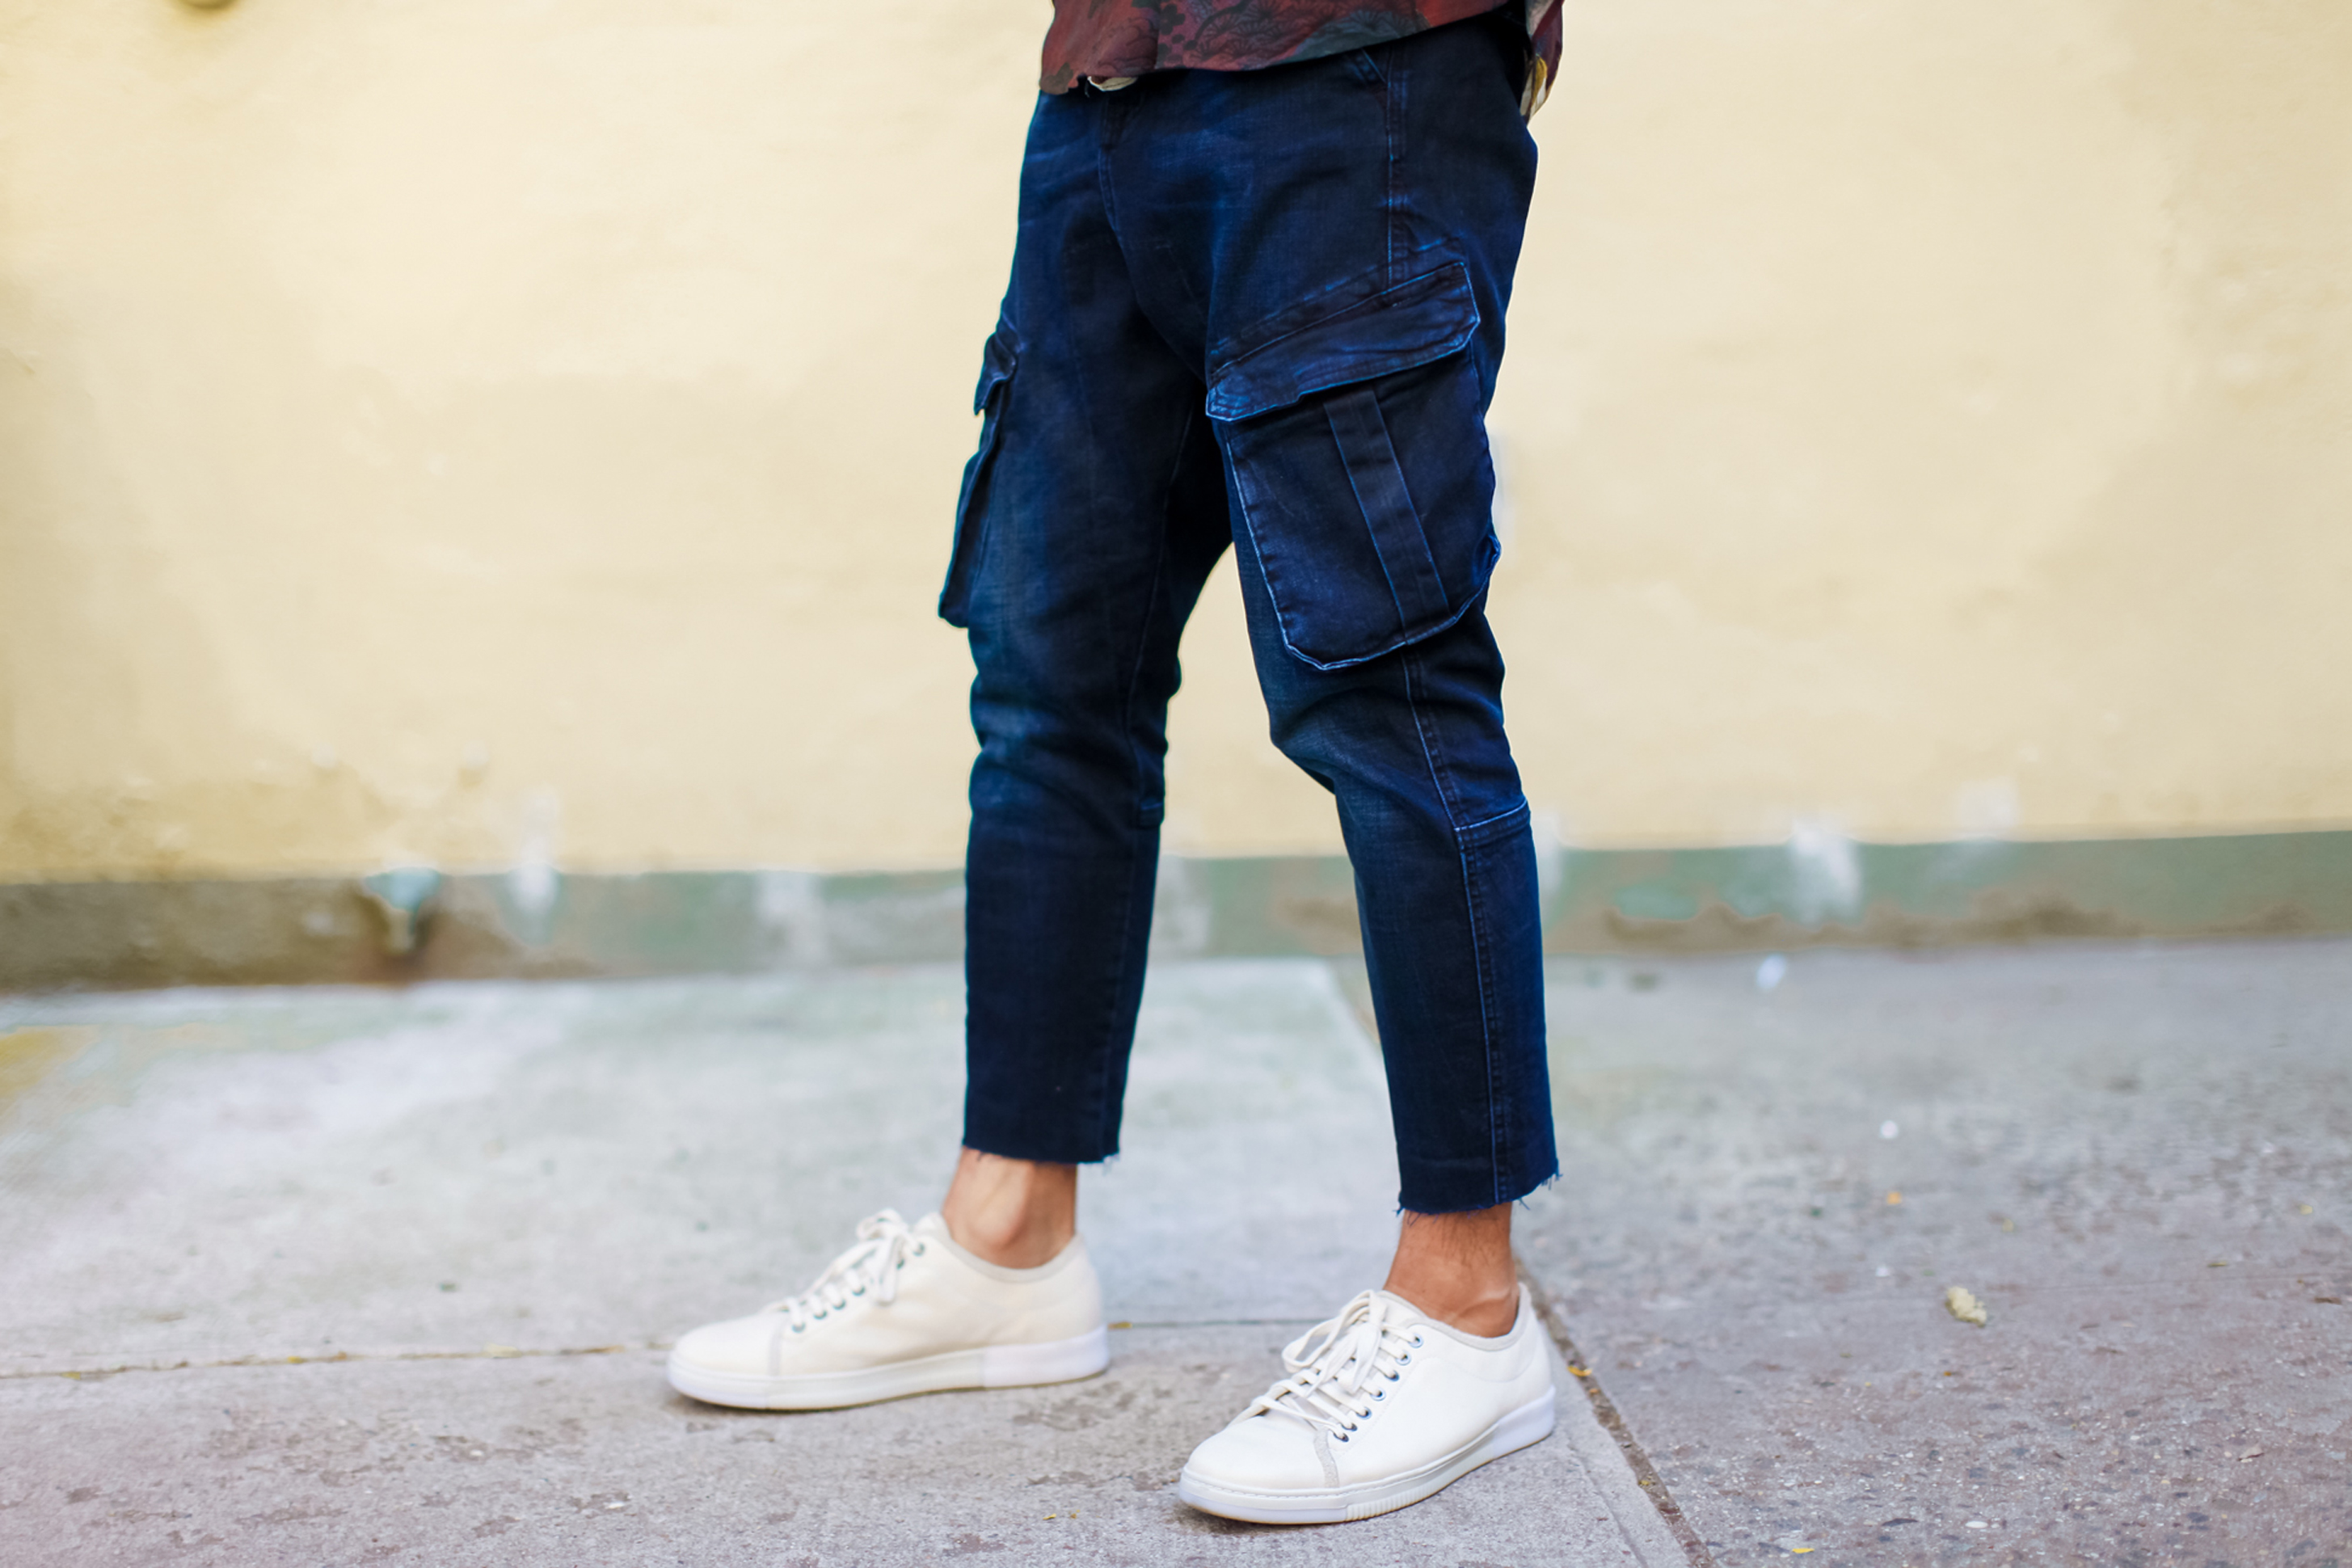 vince camuto mens shoes street style